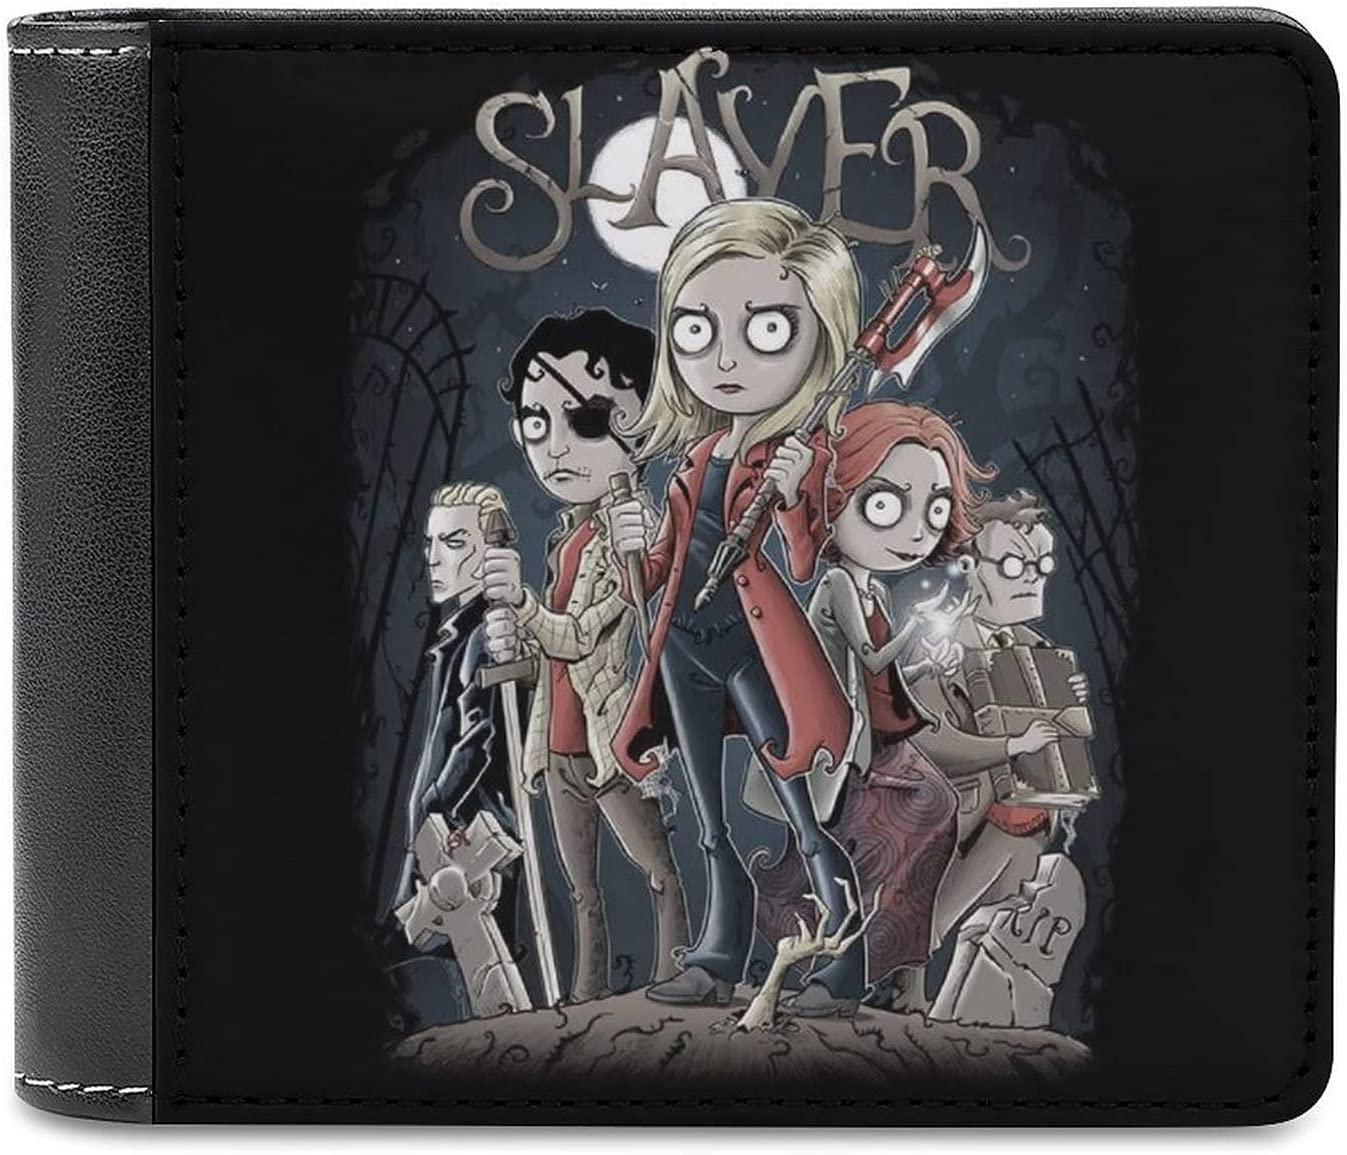 Buffy The Vampire Slayer Tim Burton Style Leather bi-fold wallet, large-capacity credit card holder, comfortable and delicate touch